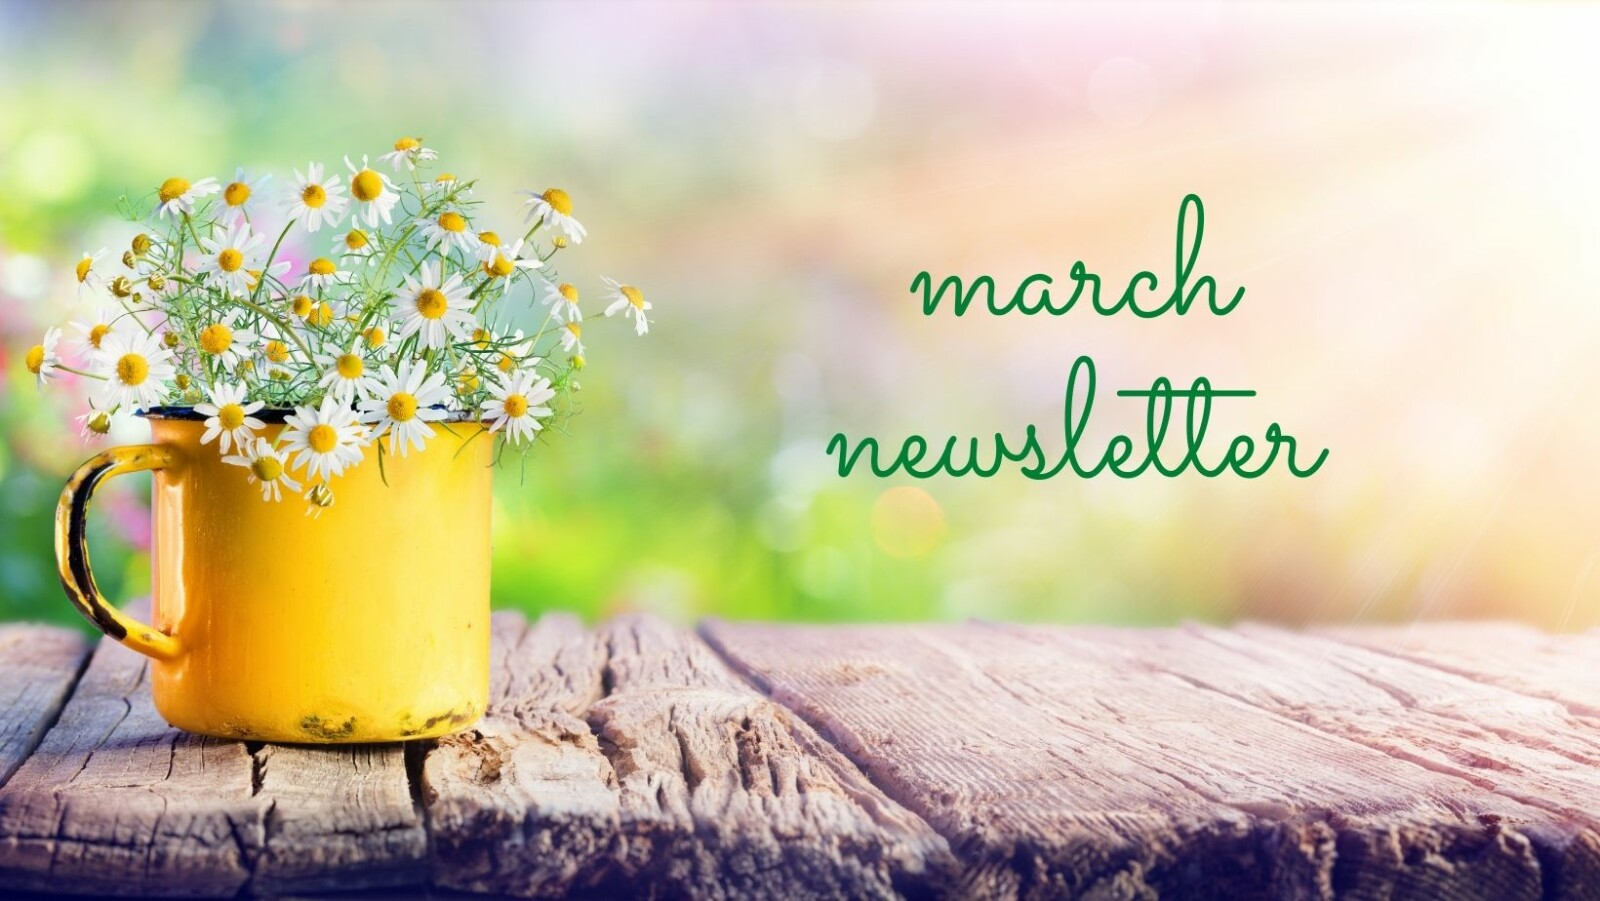 March News! 🍀